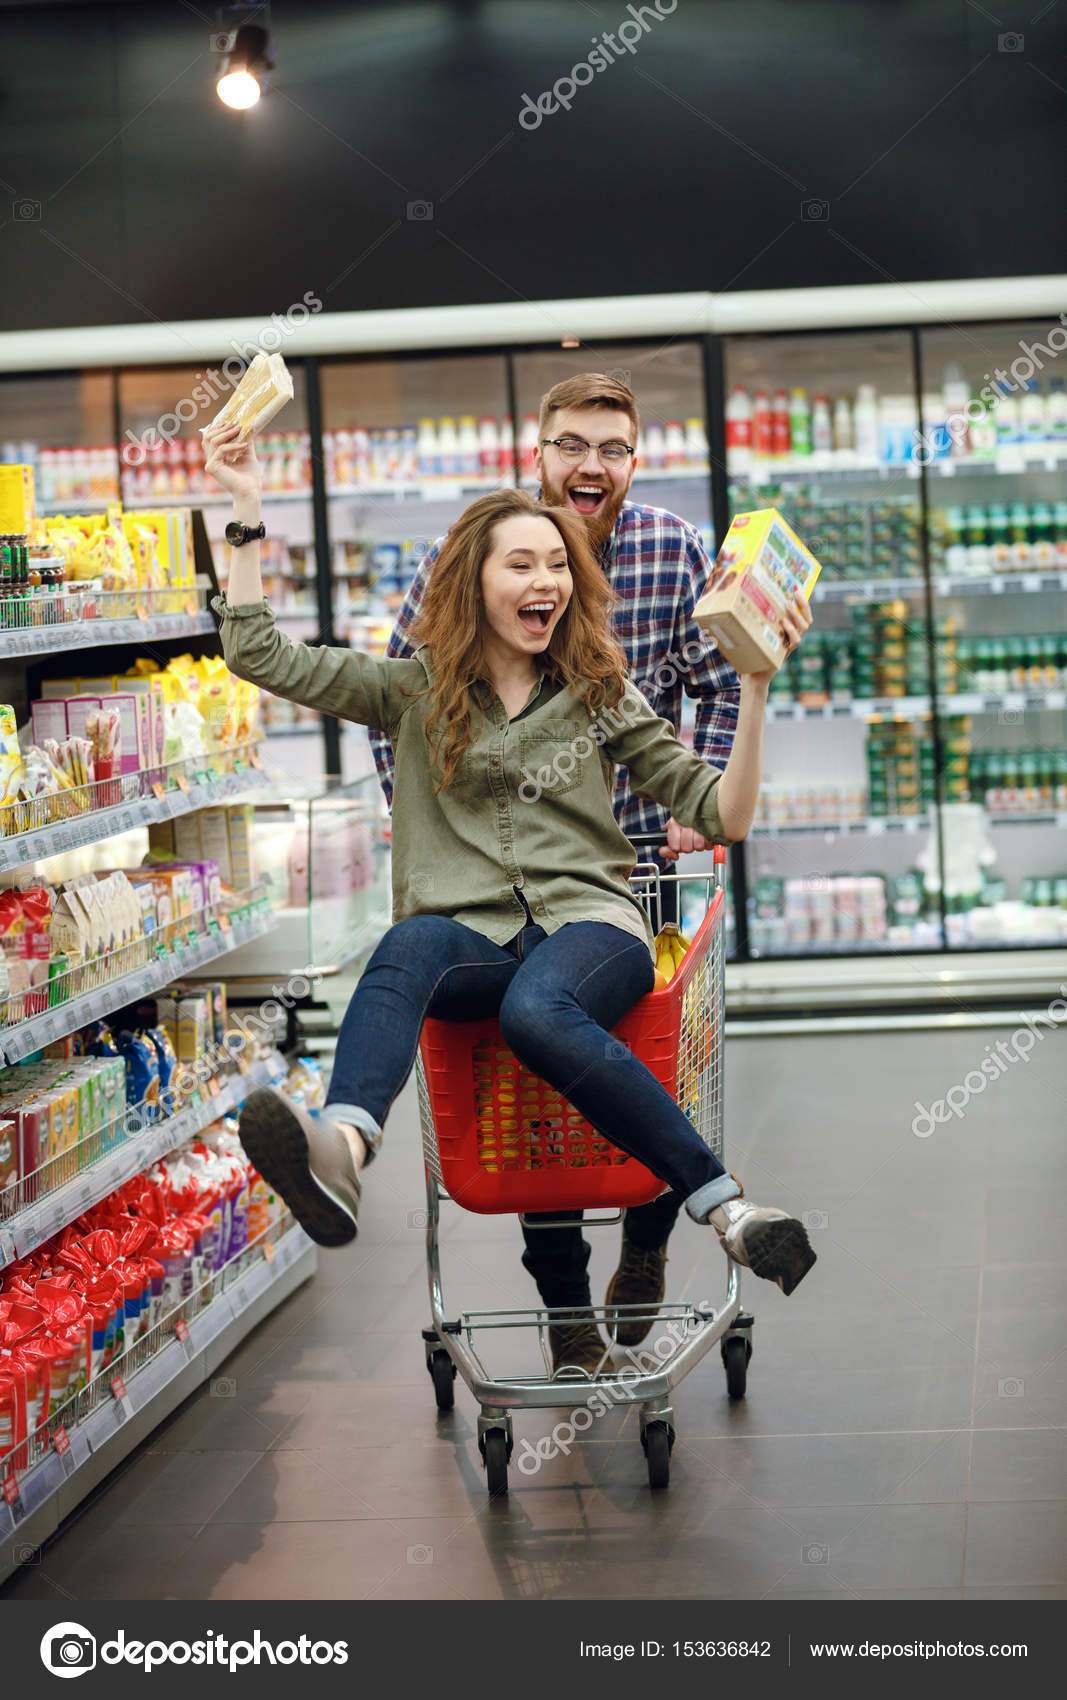 Couple Having Fun With The Shopping Cart In The Supermarket